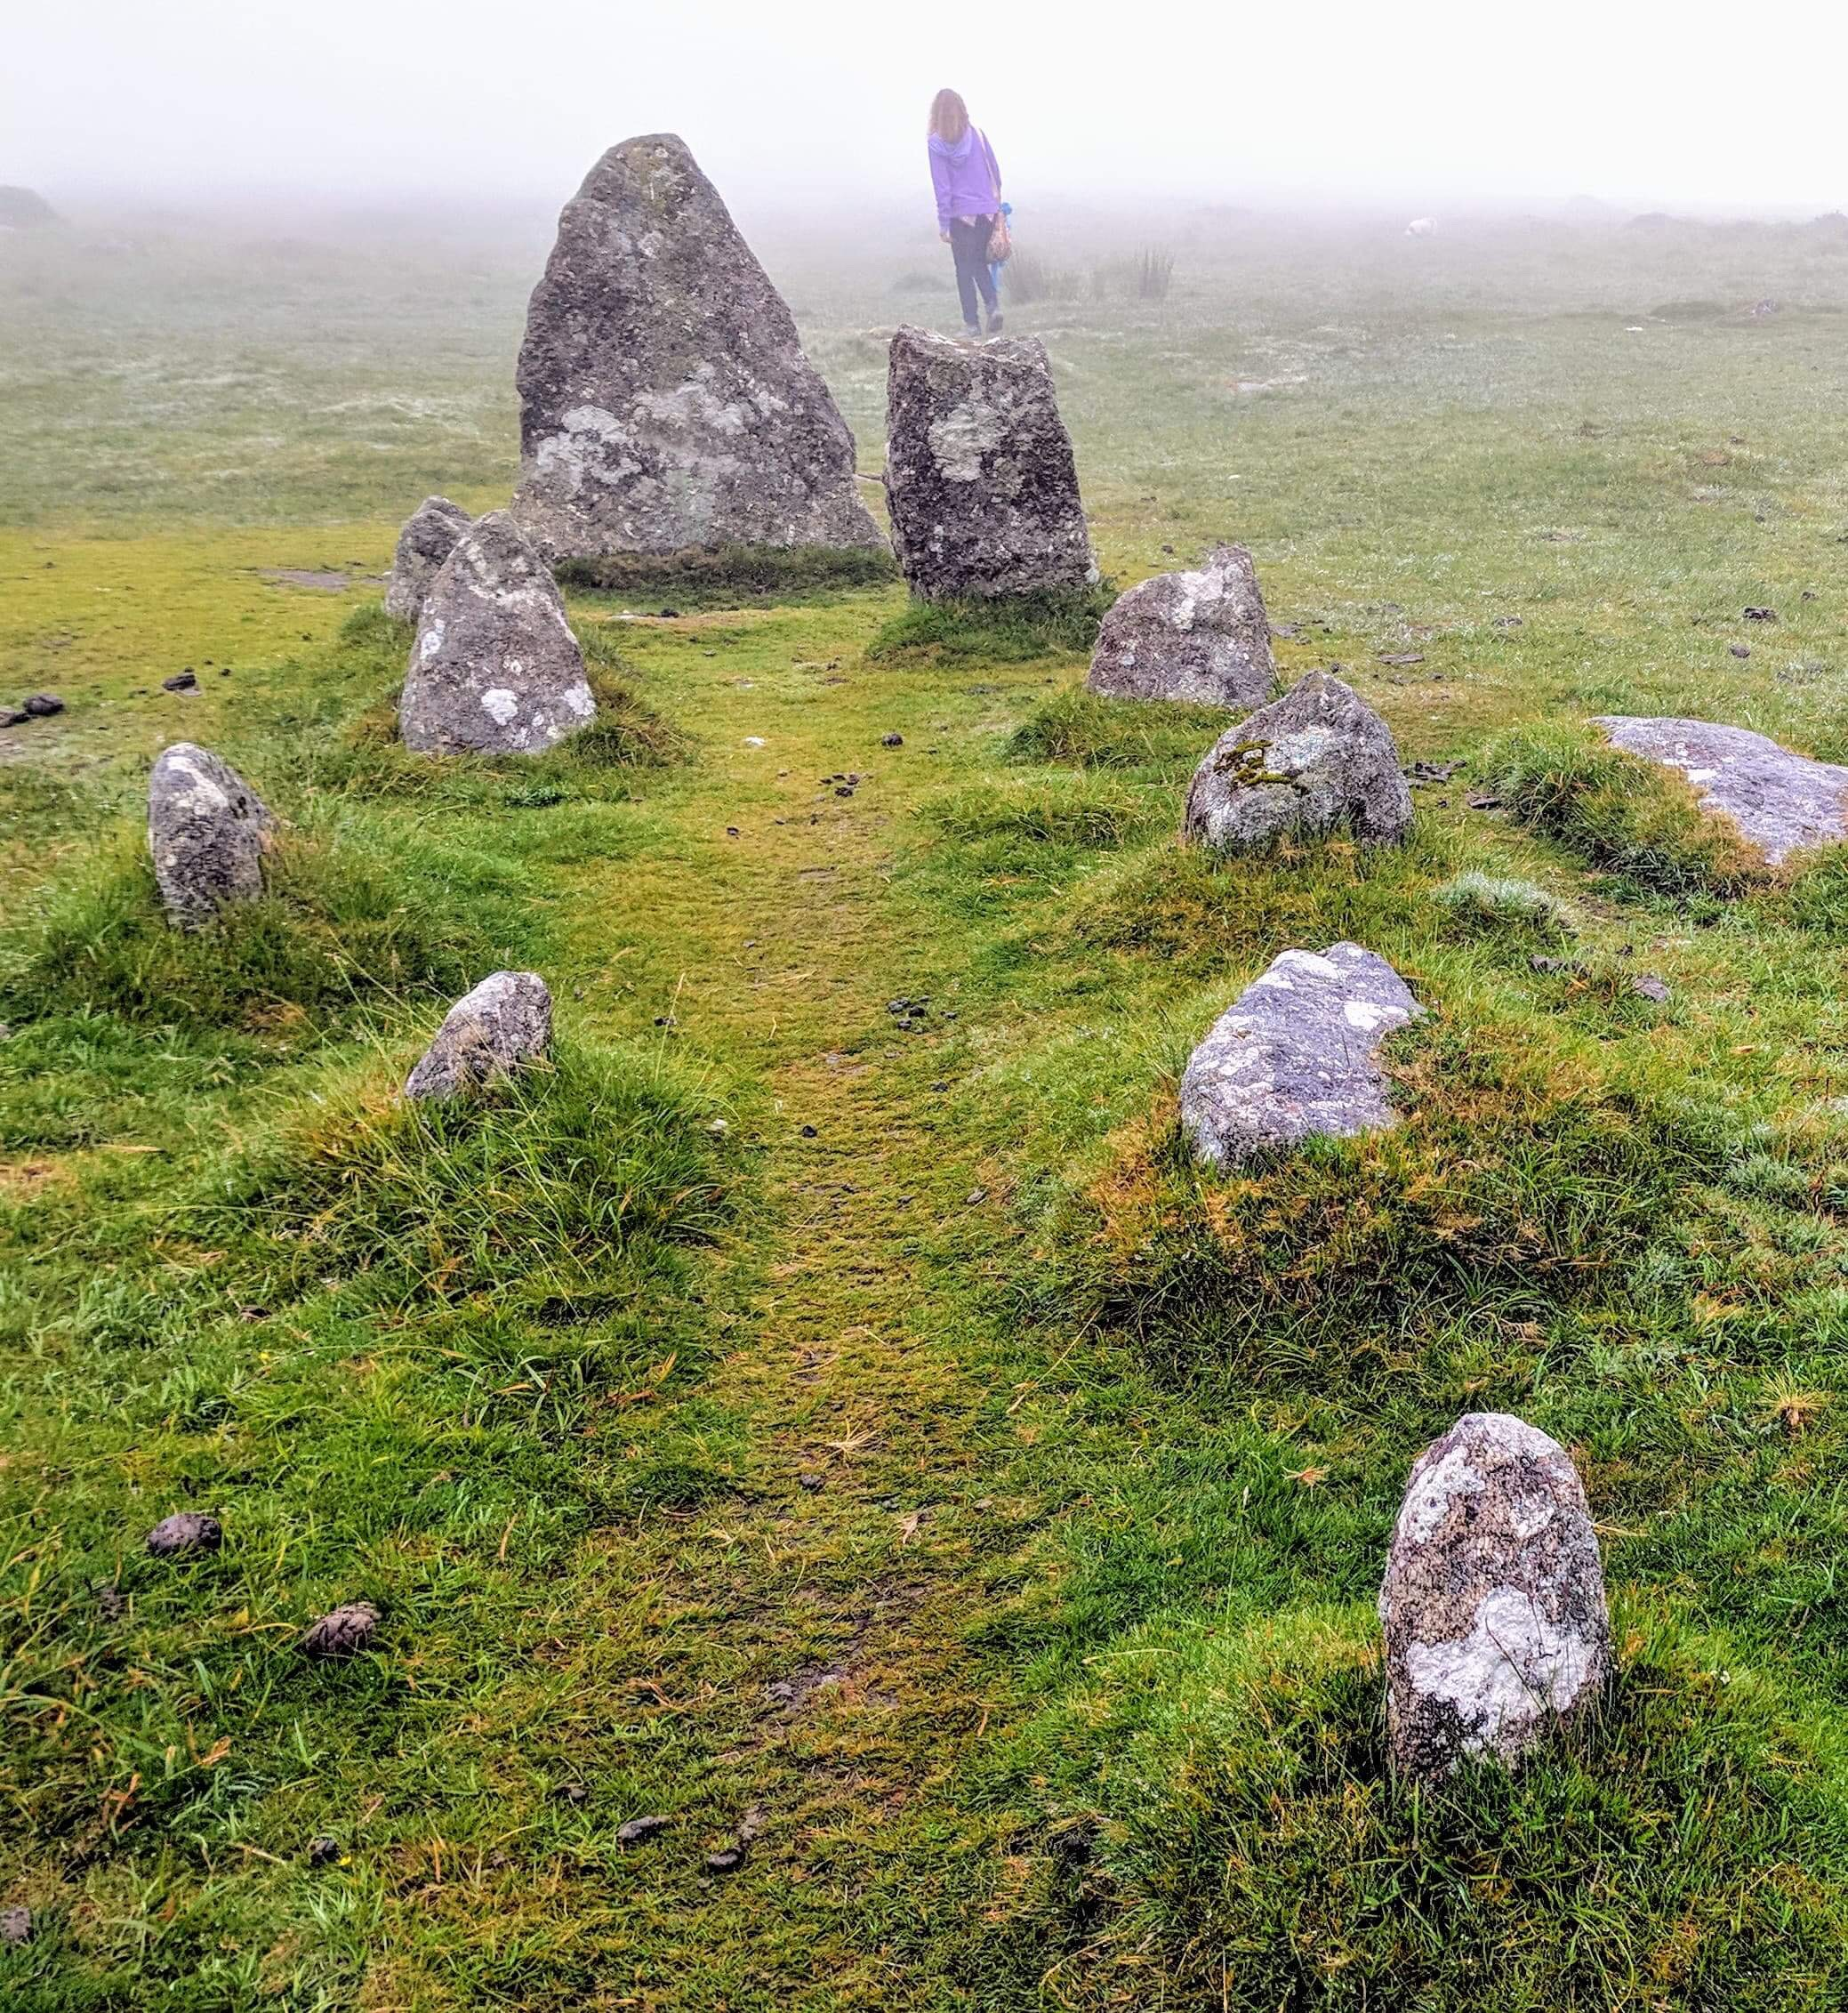 The processional avenues of Merrivale in Dartmoor